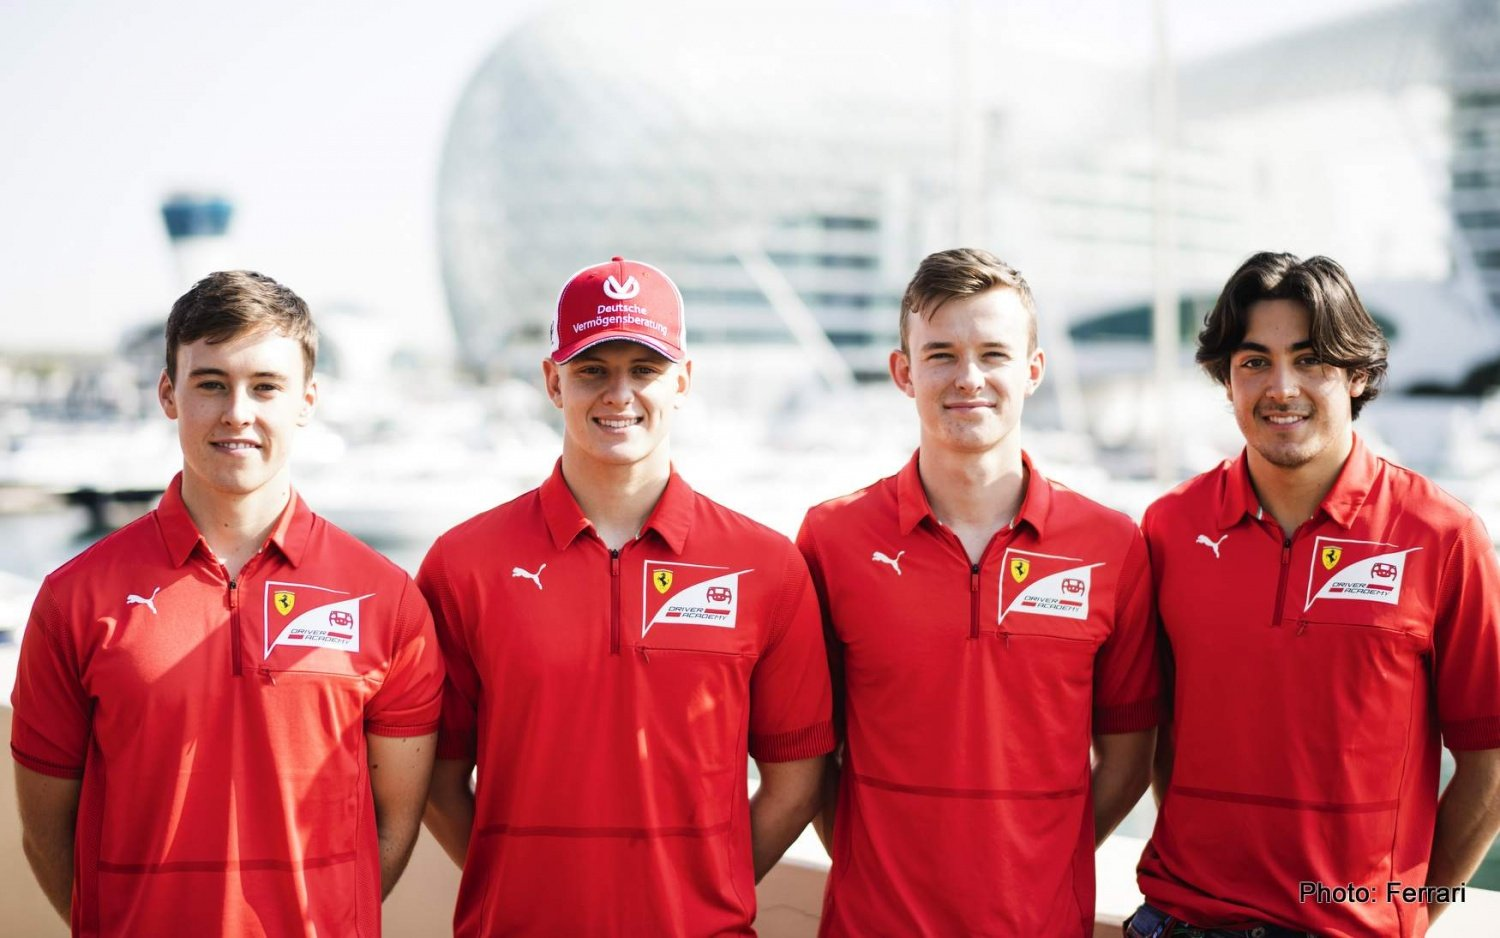 Ferrari Driver Academy confirm Mick Schumacher for Formula 2 season